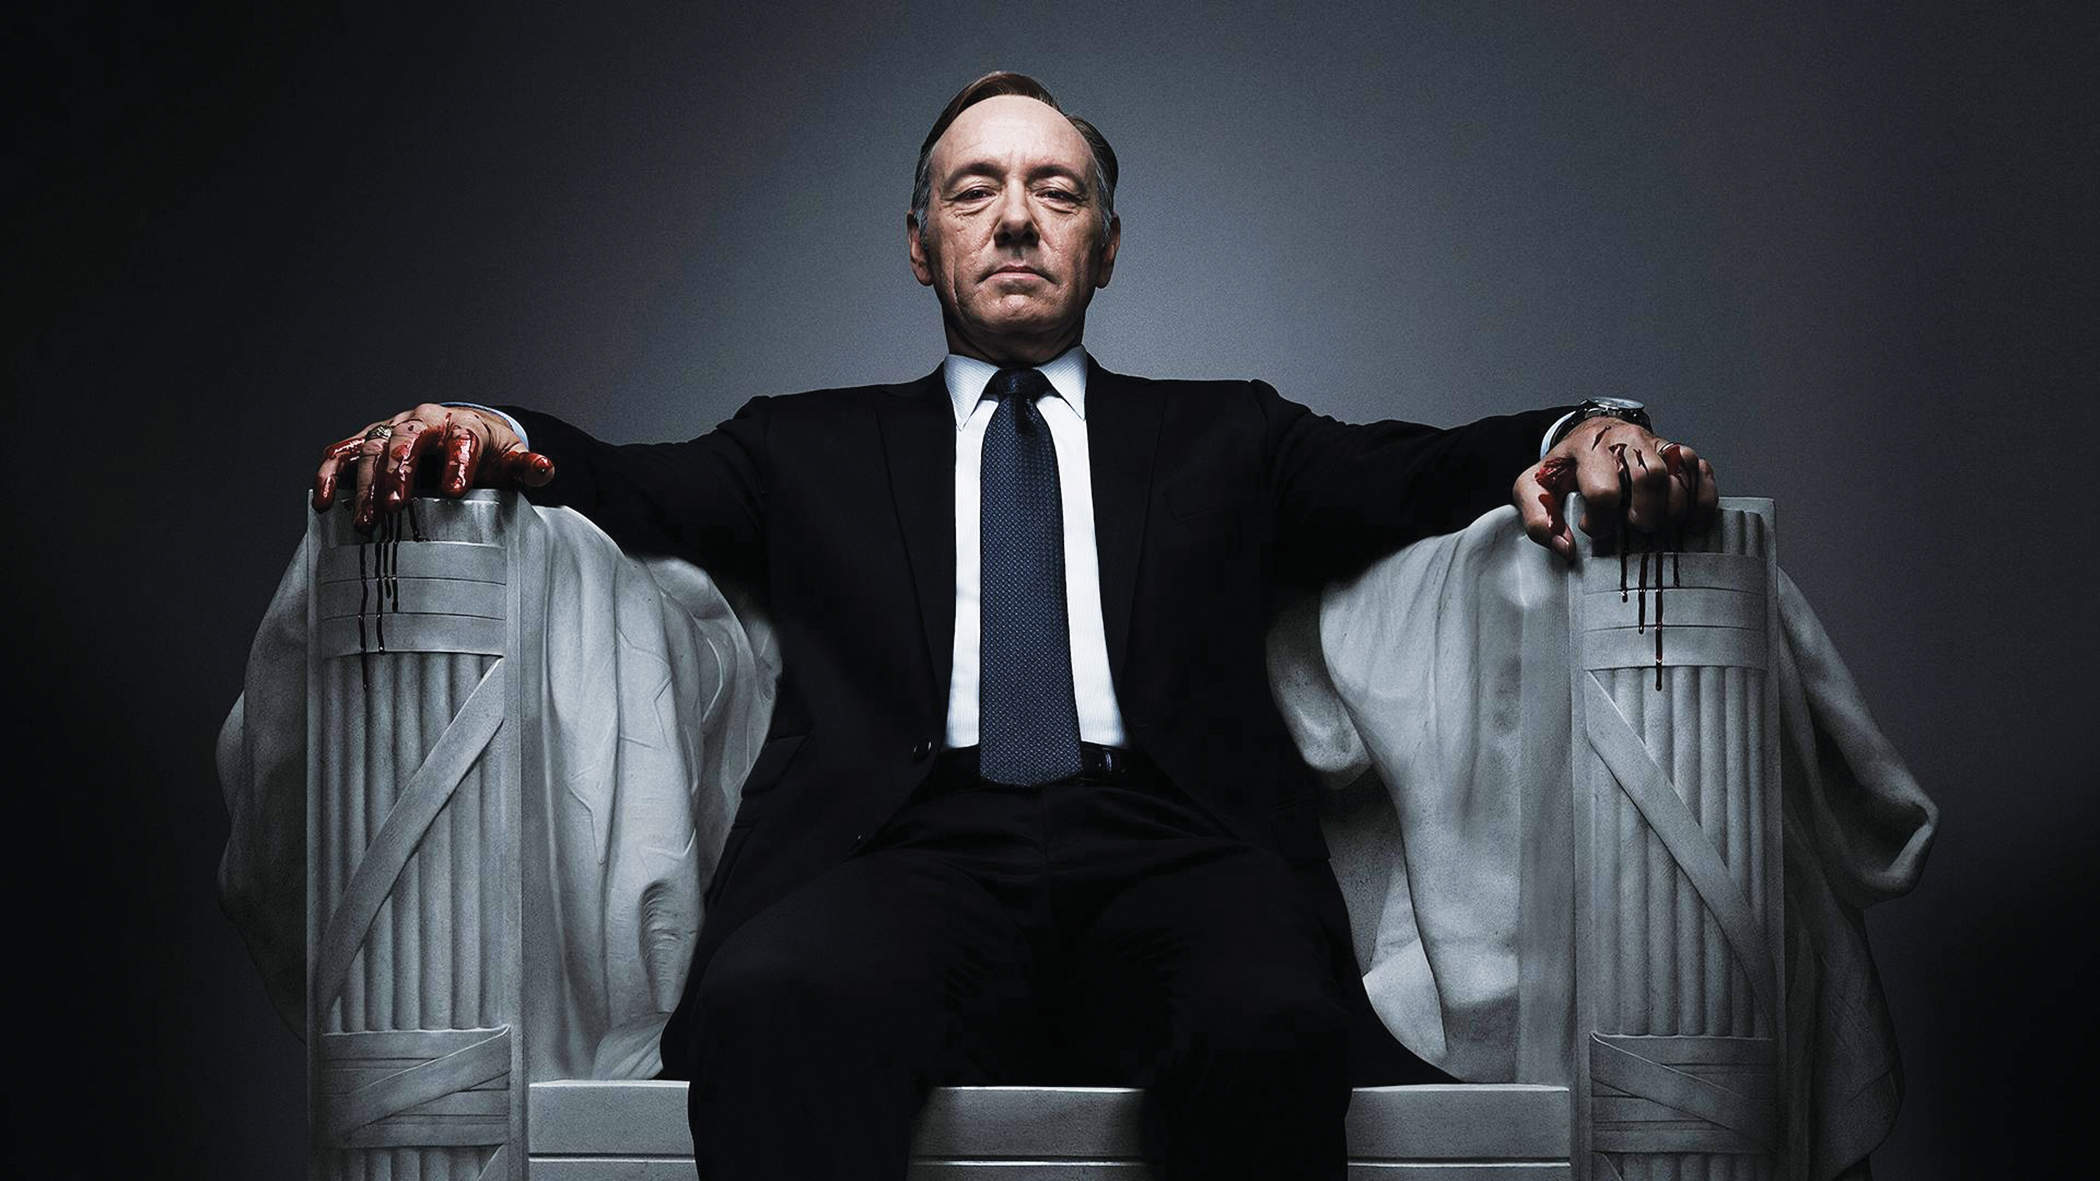 As House of Cards hits season four, the script has gone from unlikely to outright preposterous